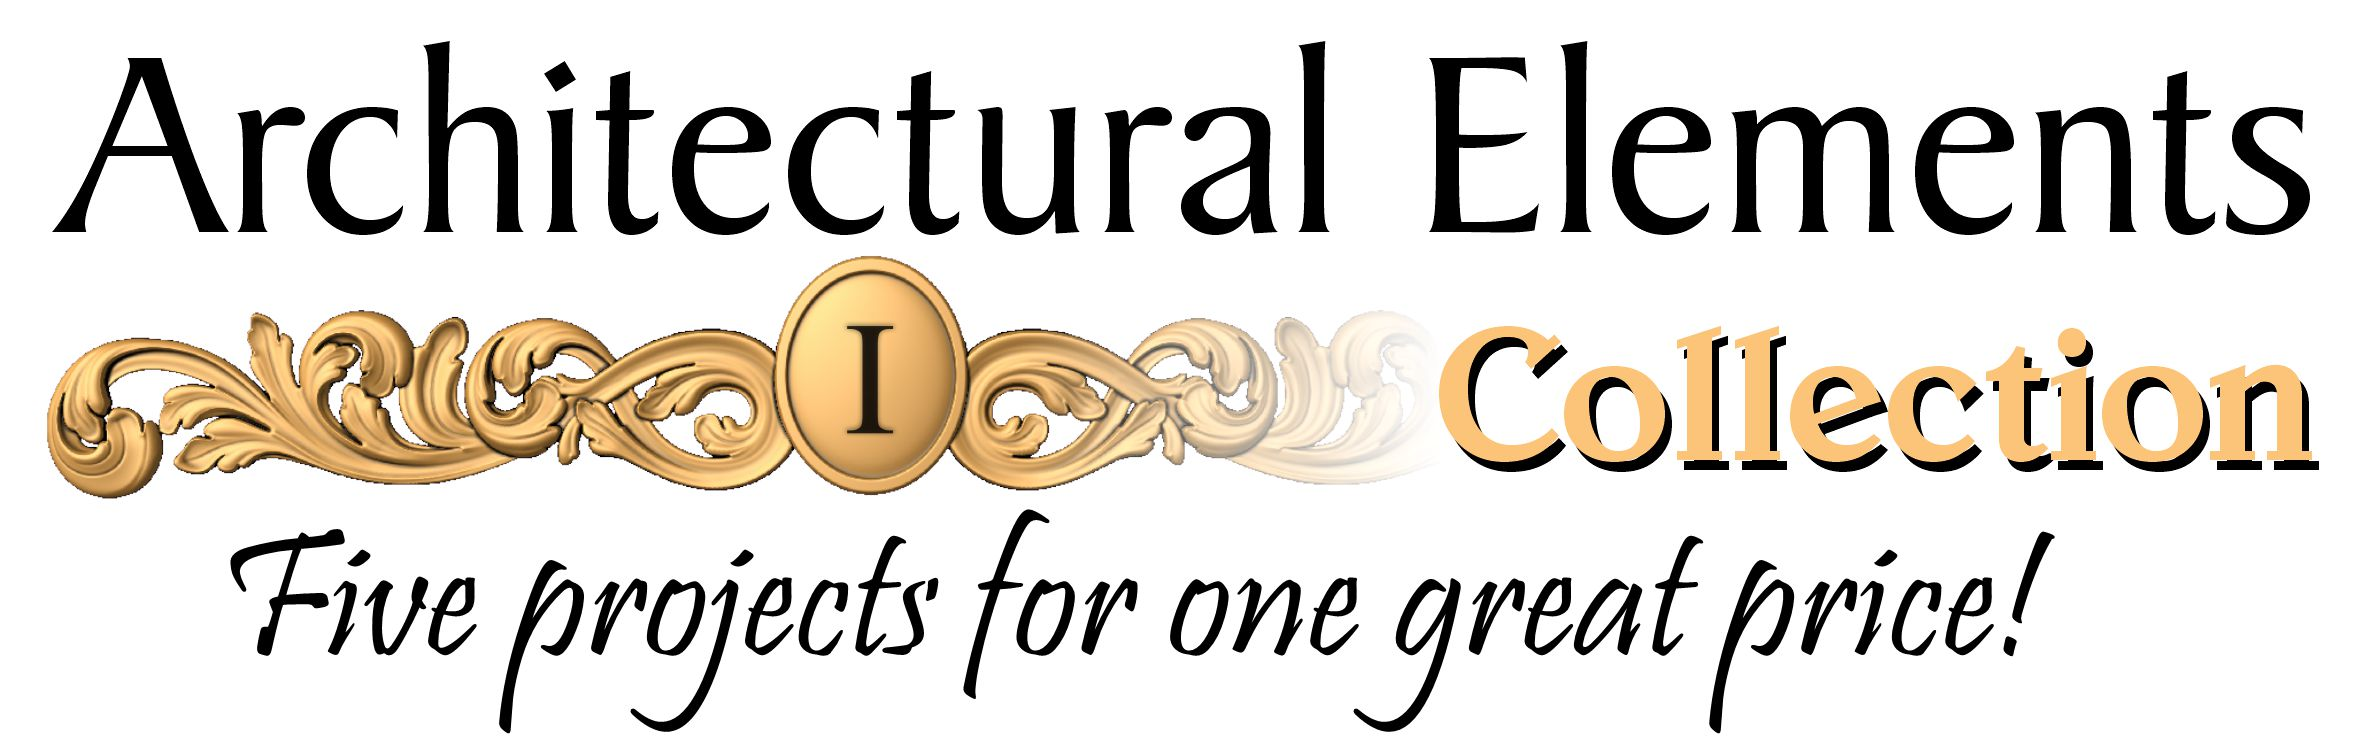 Architectural Elements Collection - Header.jpg